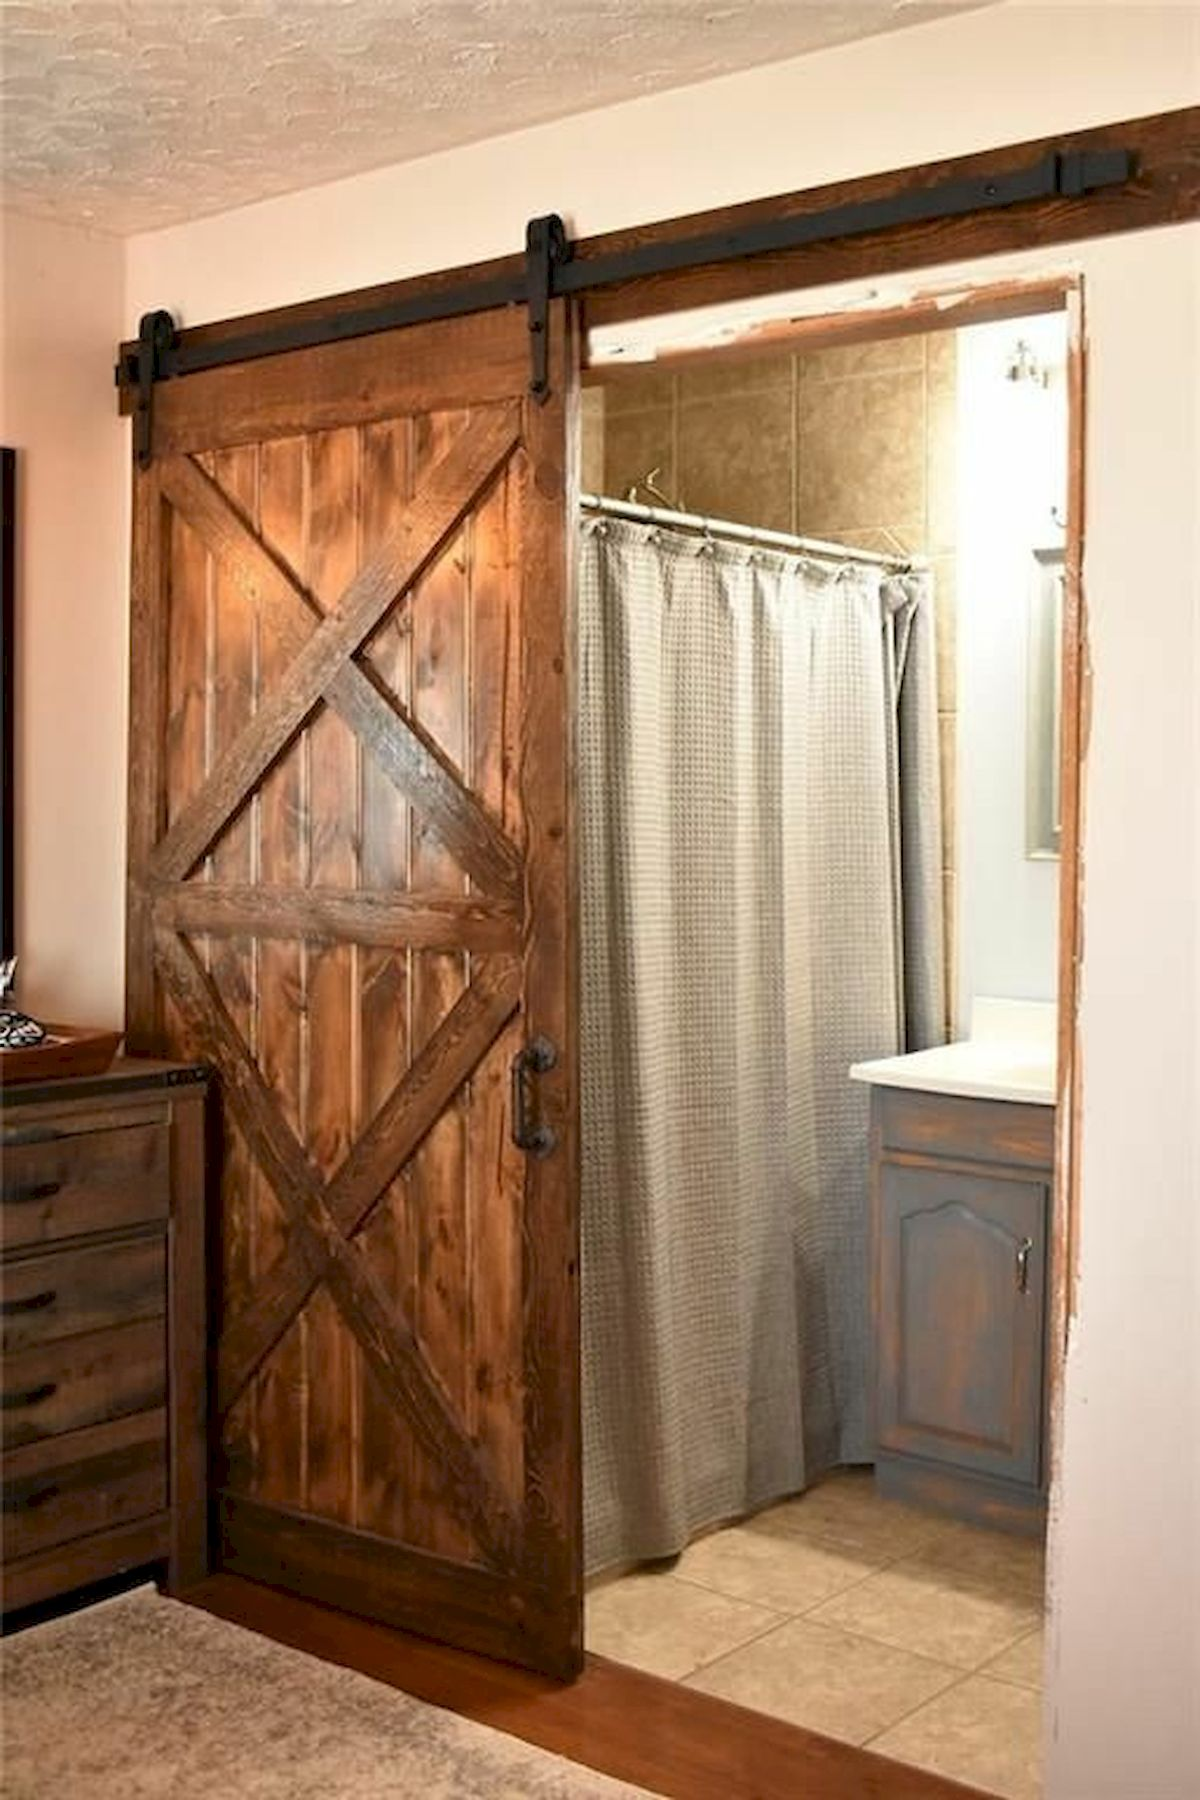 70 Rustic Home Decor Ideas for Doors and Windows (7)